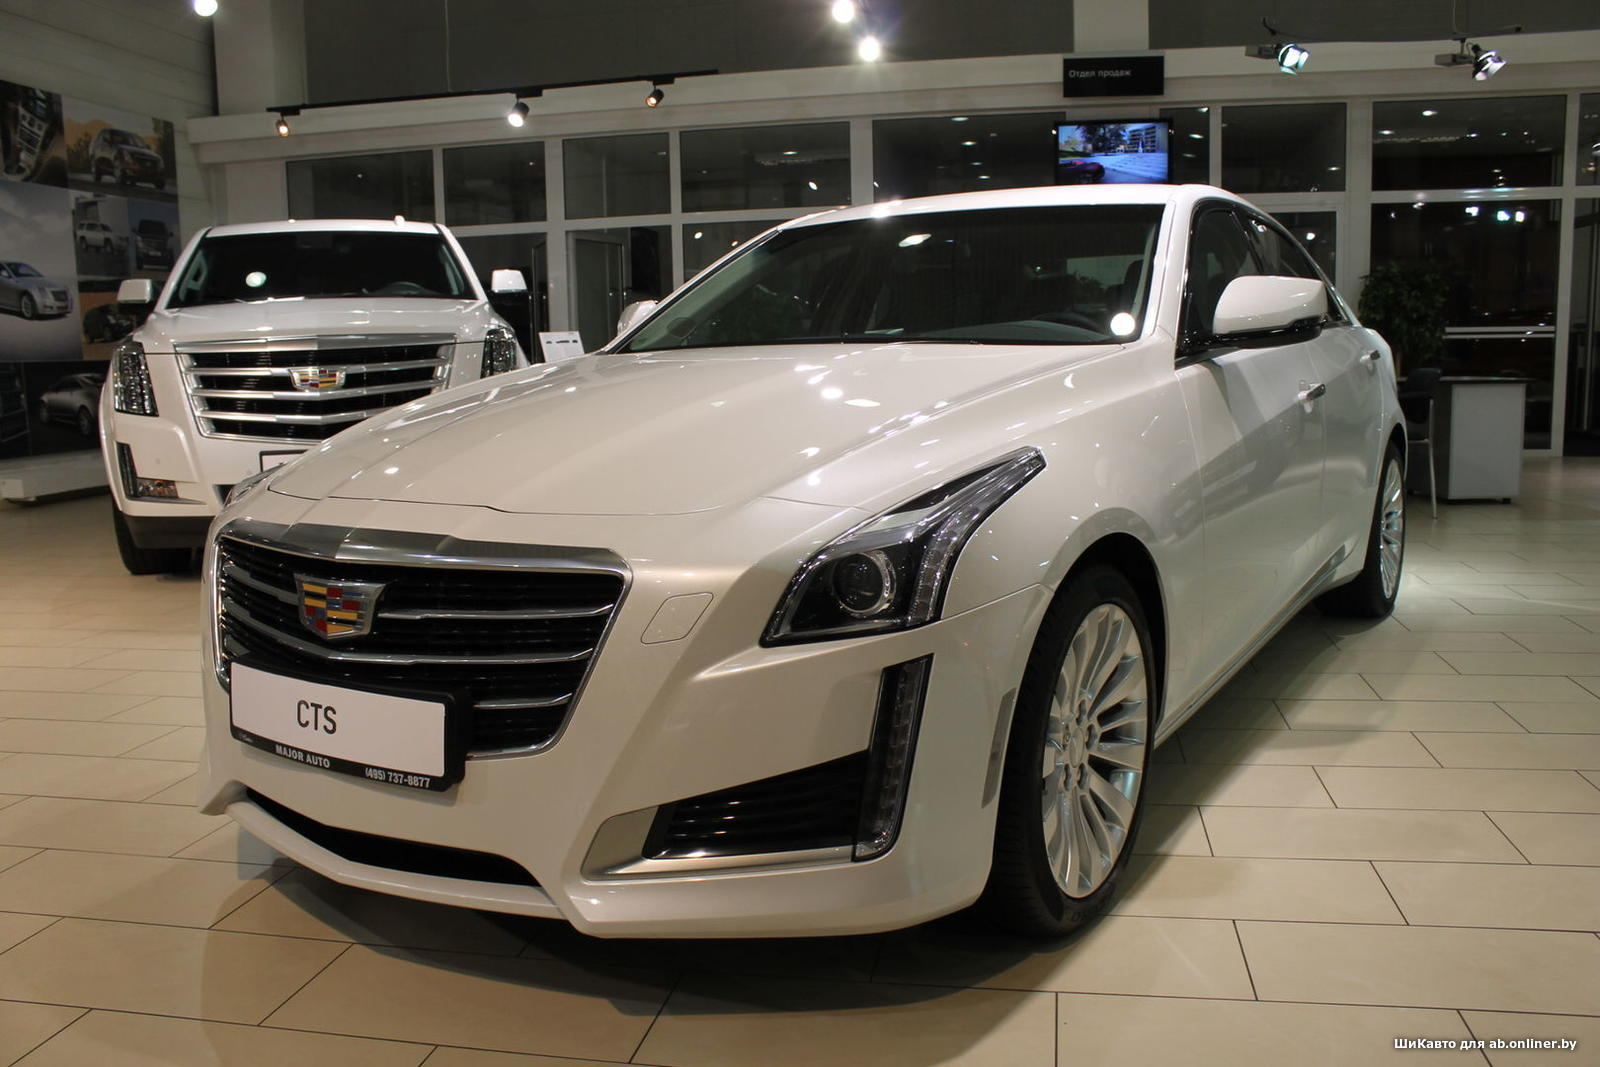 Cadillac CTS 2.0t 4WD PERFORMANCE